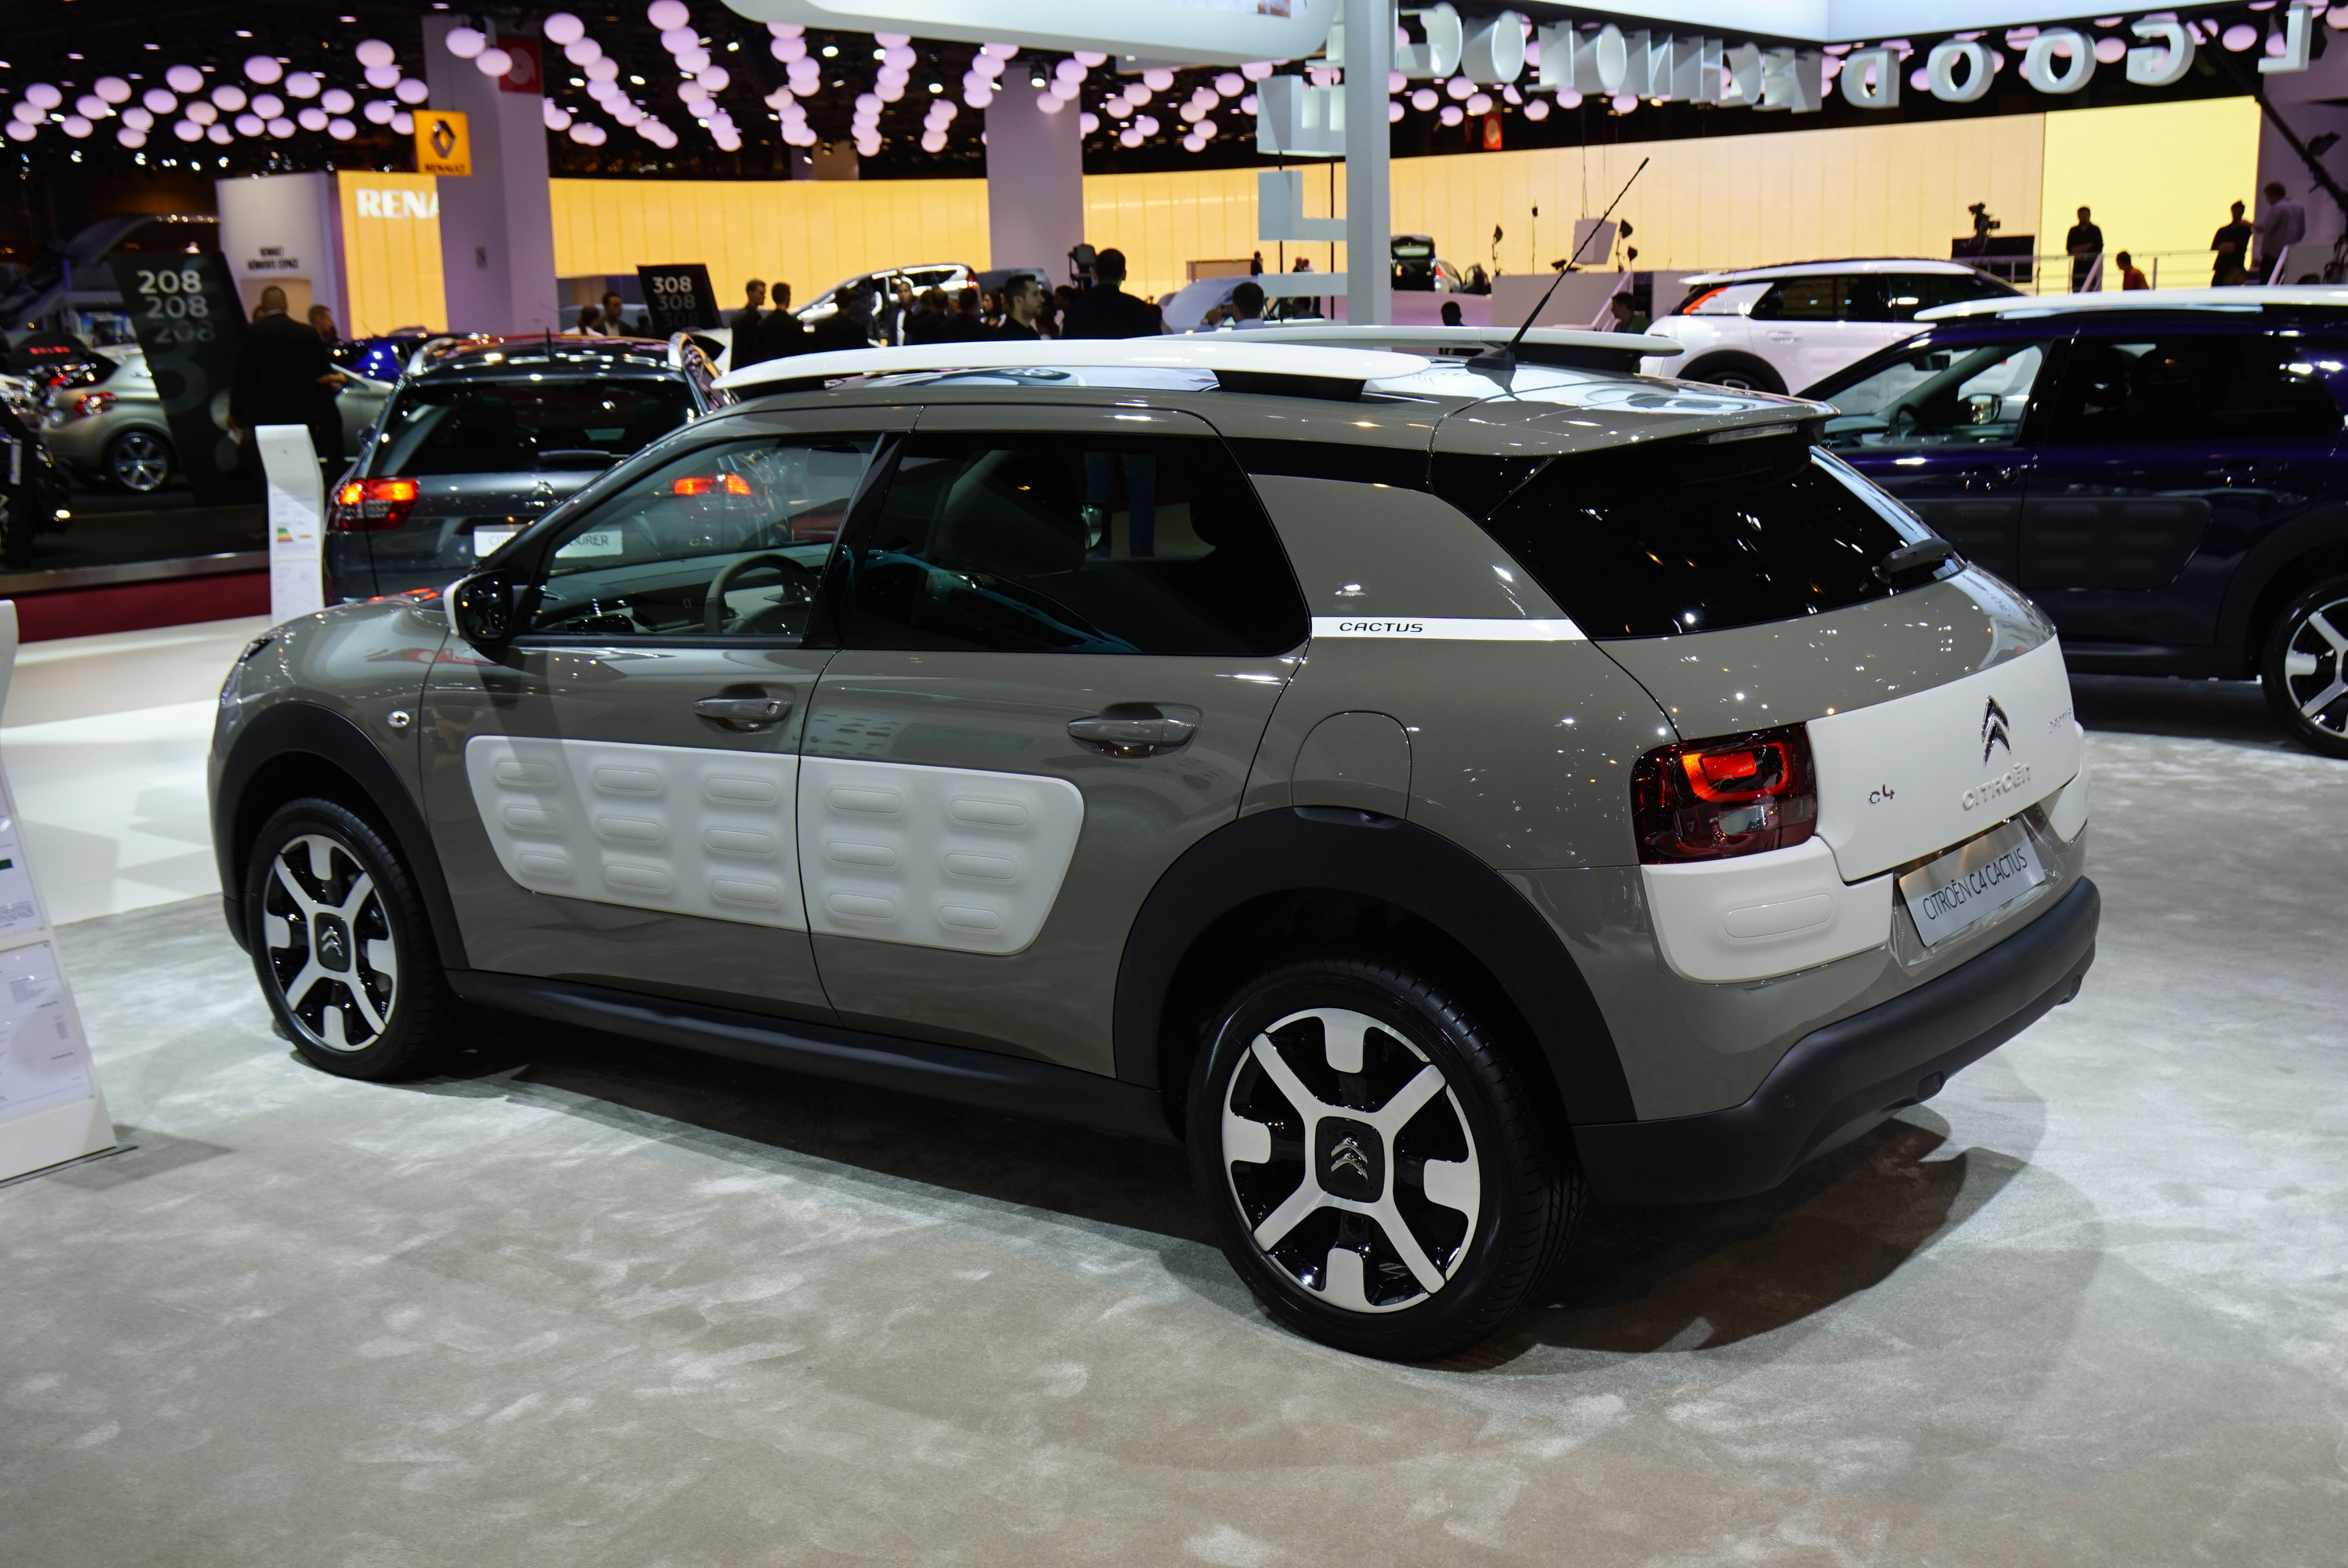 citroen c4 cactus paris 2014 picture 111513. Black Bedroom Furniture Sets. Home Design Ideas